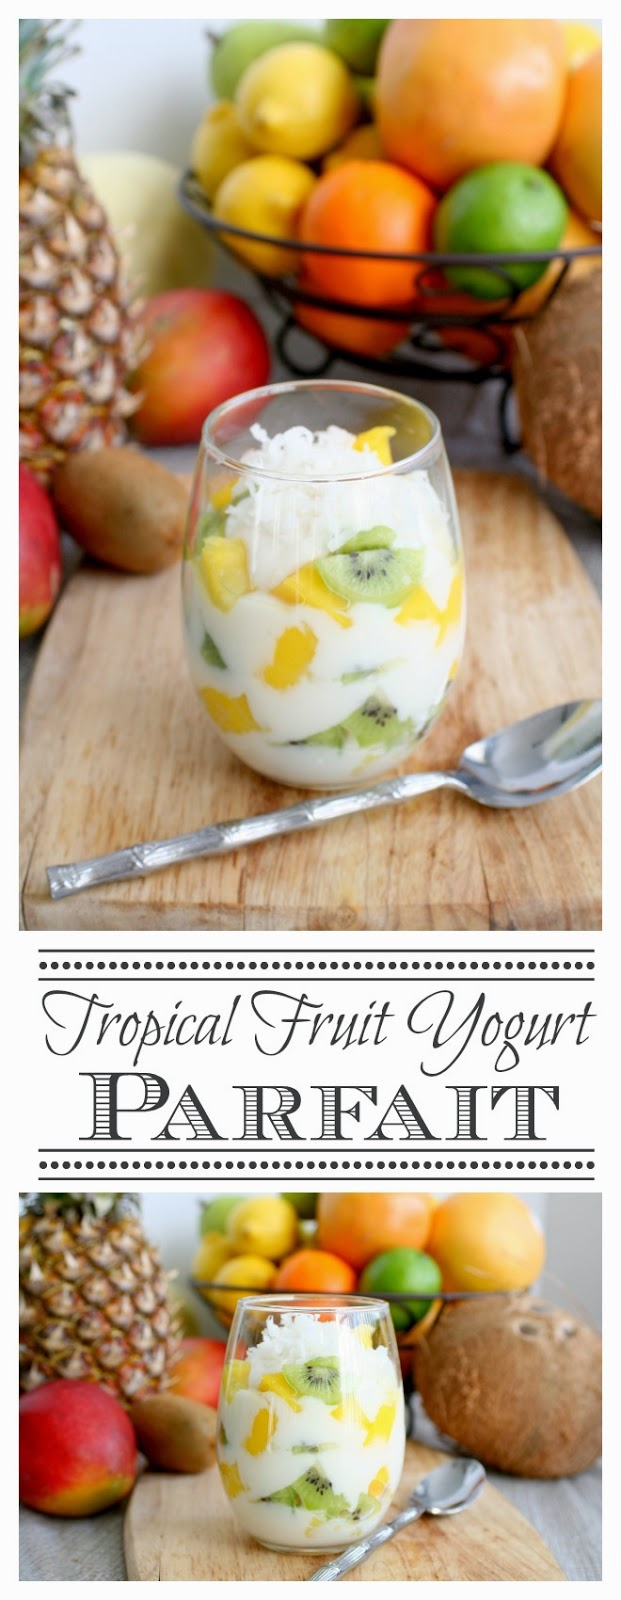 Tropical Fruit Yogurt Parfait - yummy pineapple, mango, and kiwi layered with vanilla yogurt and topped with sweetened coconut | jordanseasyentertaining.com